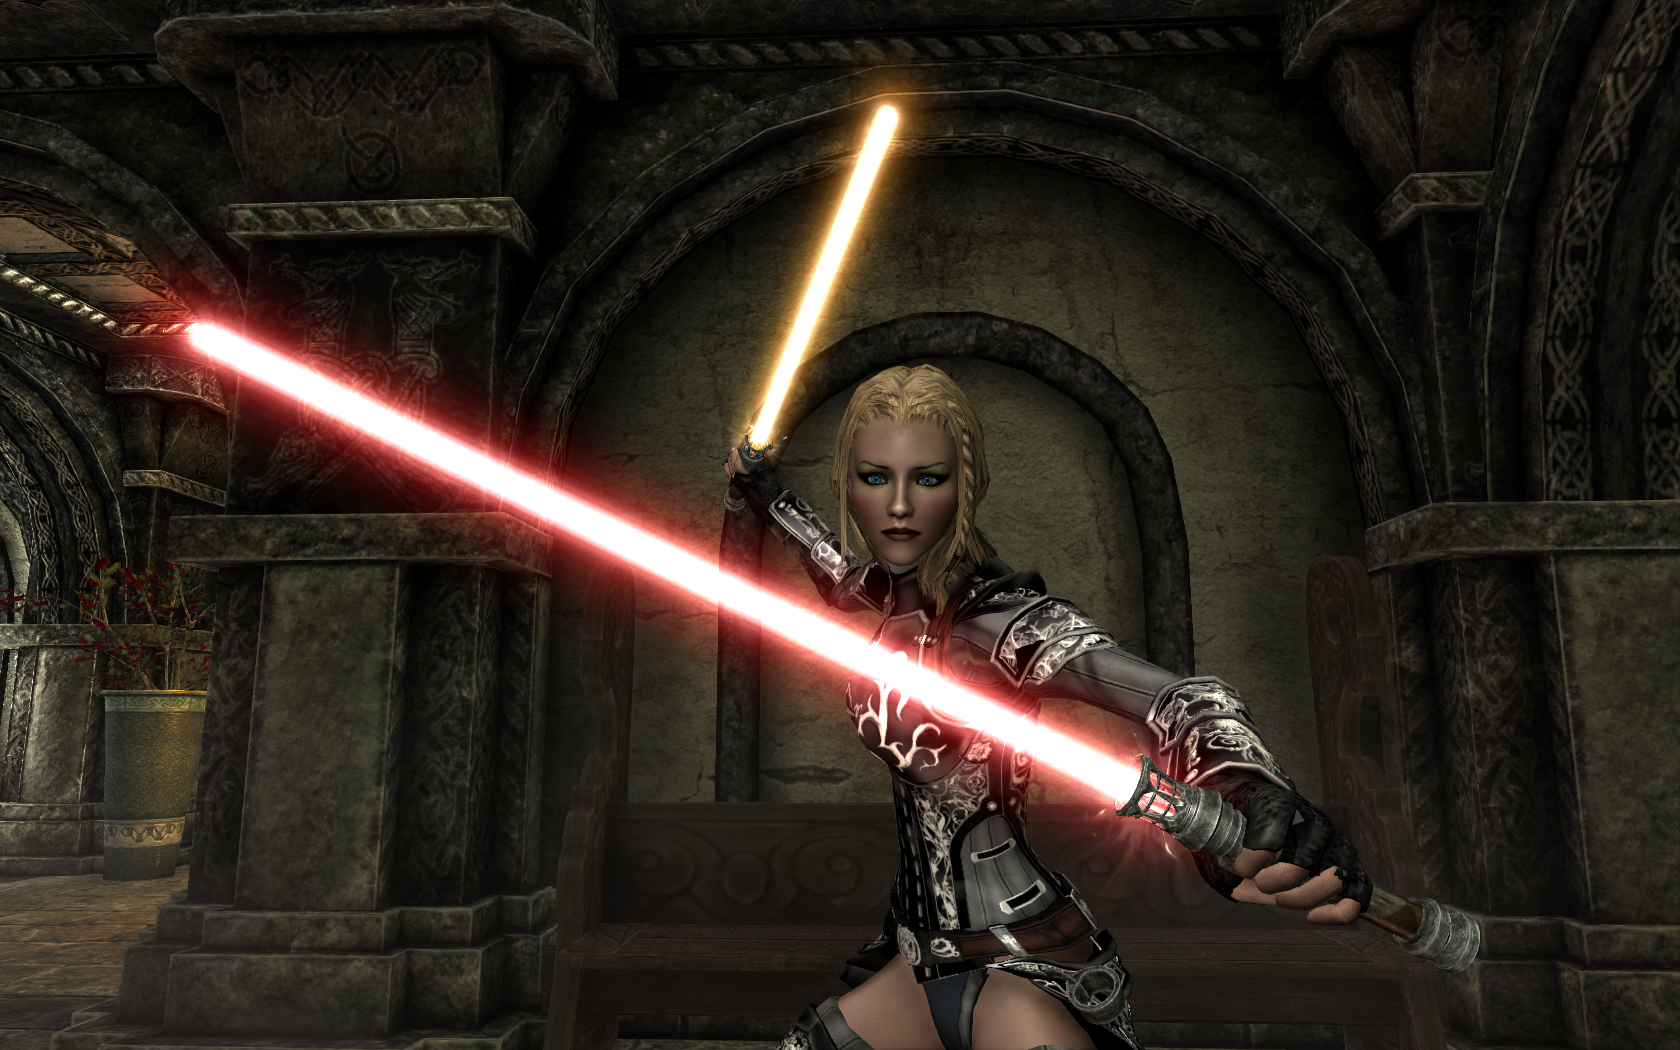 Nude mod for kotor 2 downloads exposed galleries